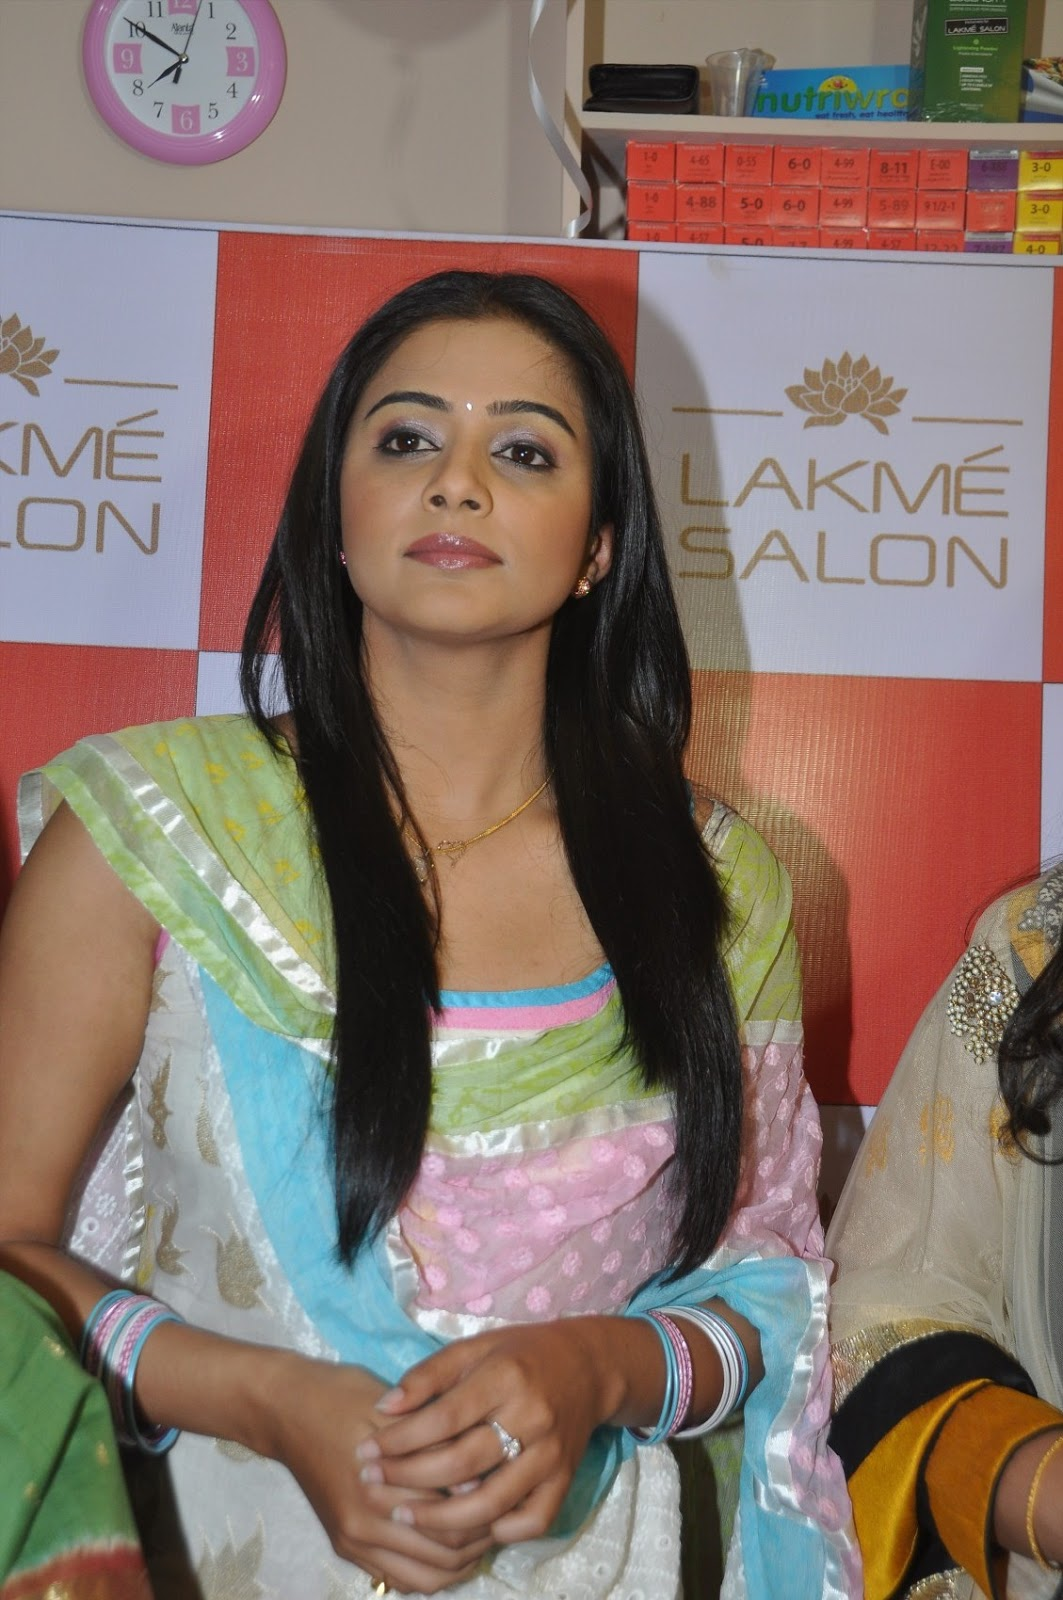 Lakme salon launched by priyamani